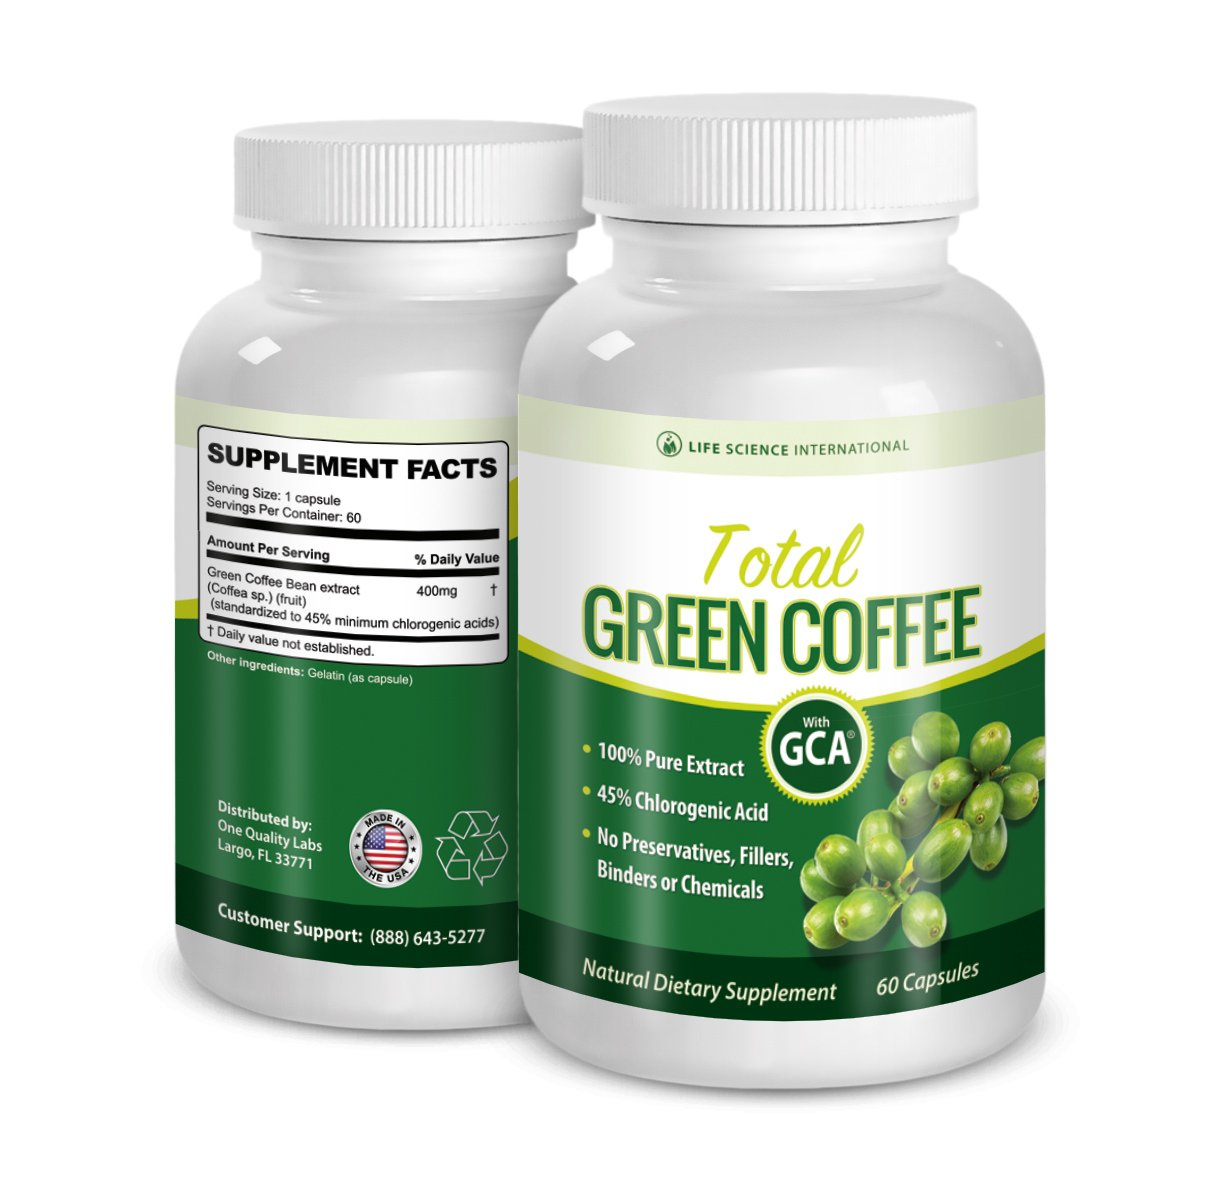 Green Coffee Diet Pills Total Green Coffee 100% Pure Extract - 60% Chlorogenic Acid Diet Pills,